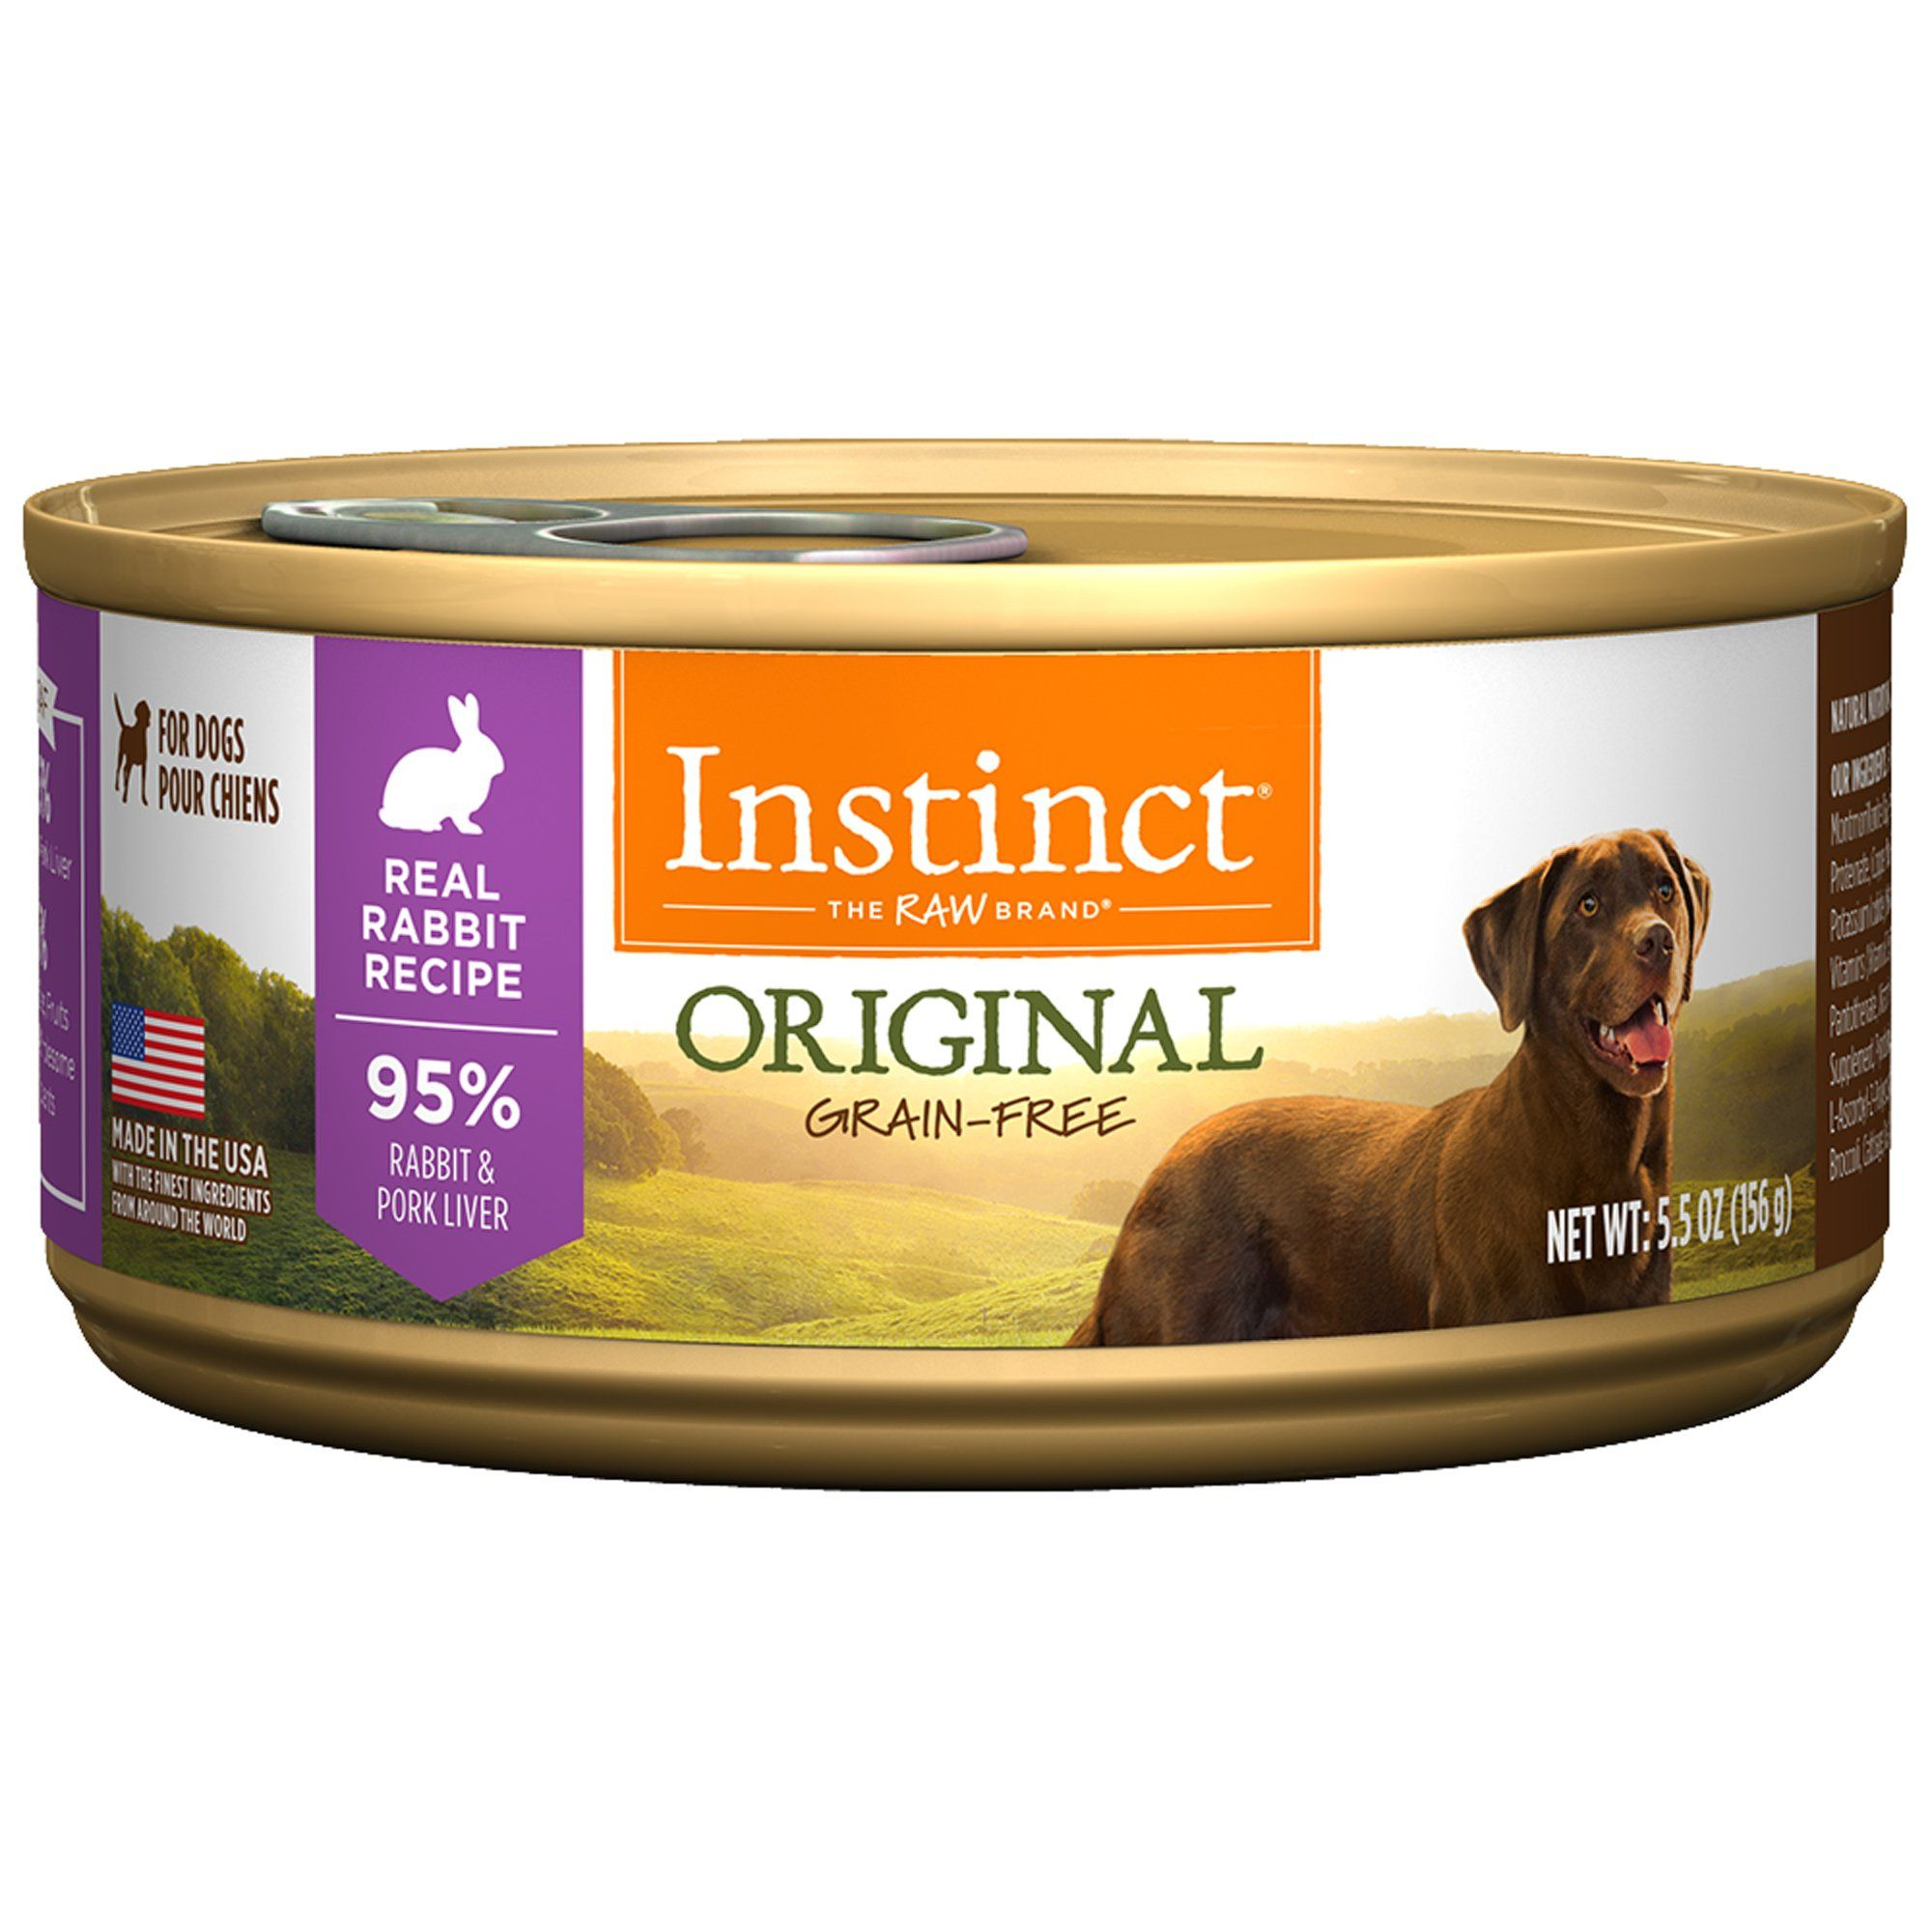 Instinct GrainFree Rabbit Canned Dog Food by Nature's